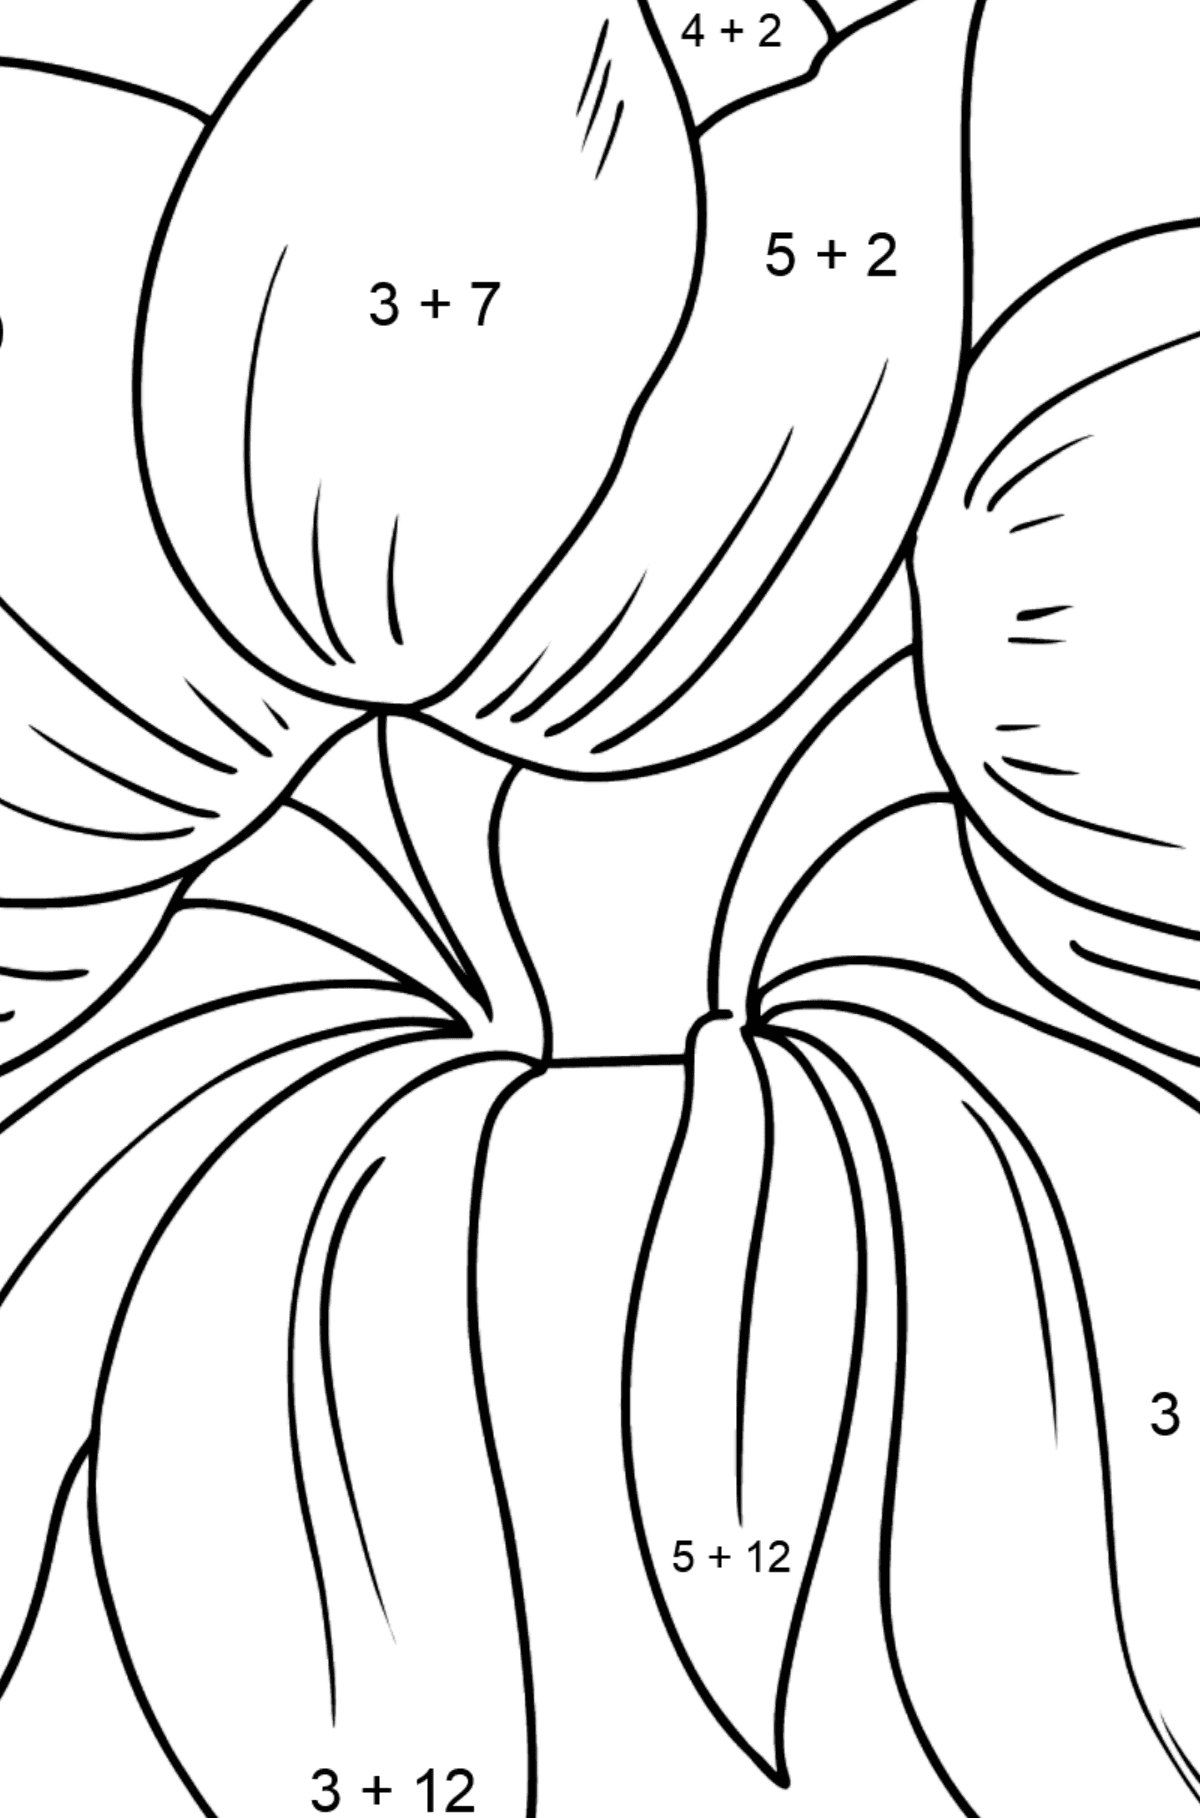 Flower Coloring Page - Tulips - Math Coloring - Addition for Kids